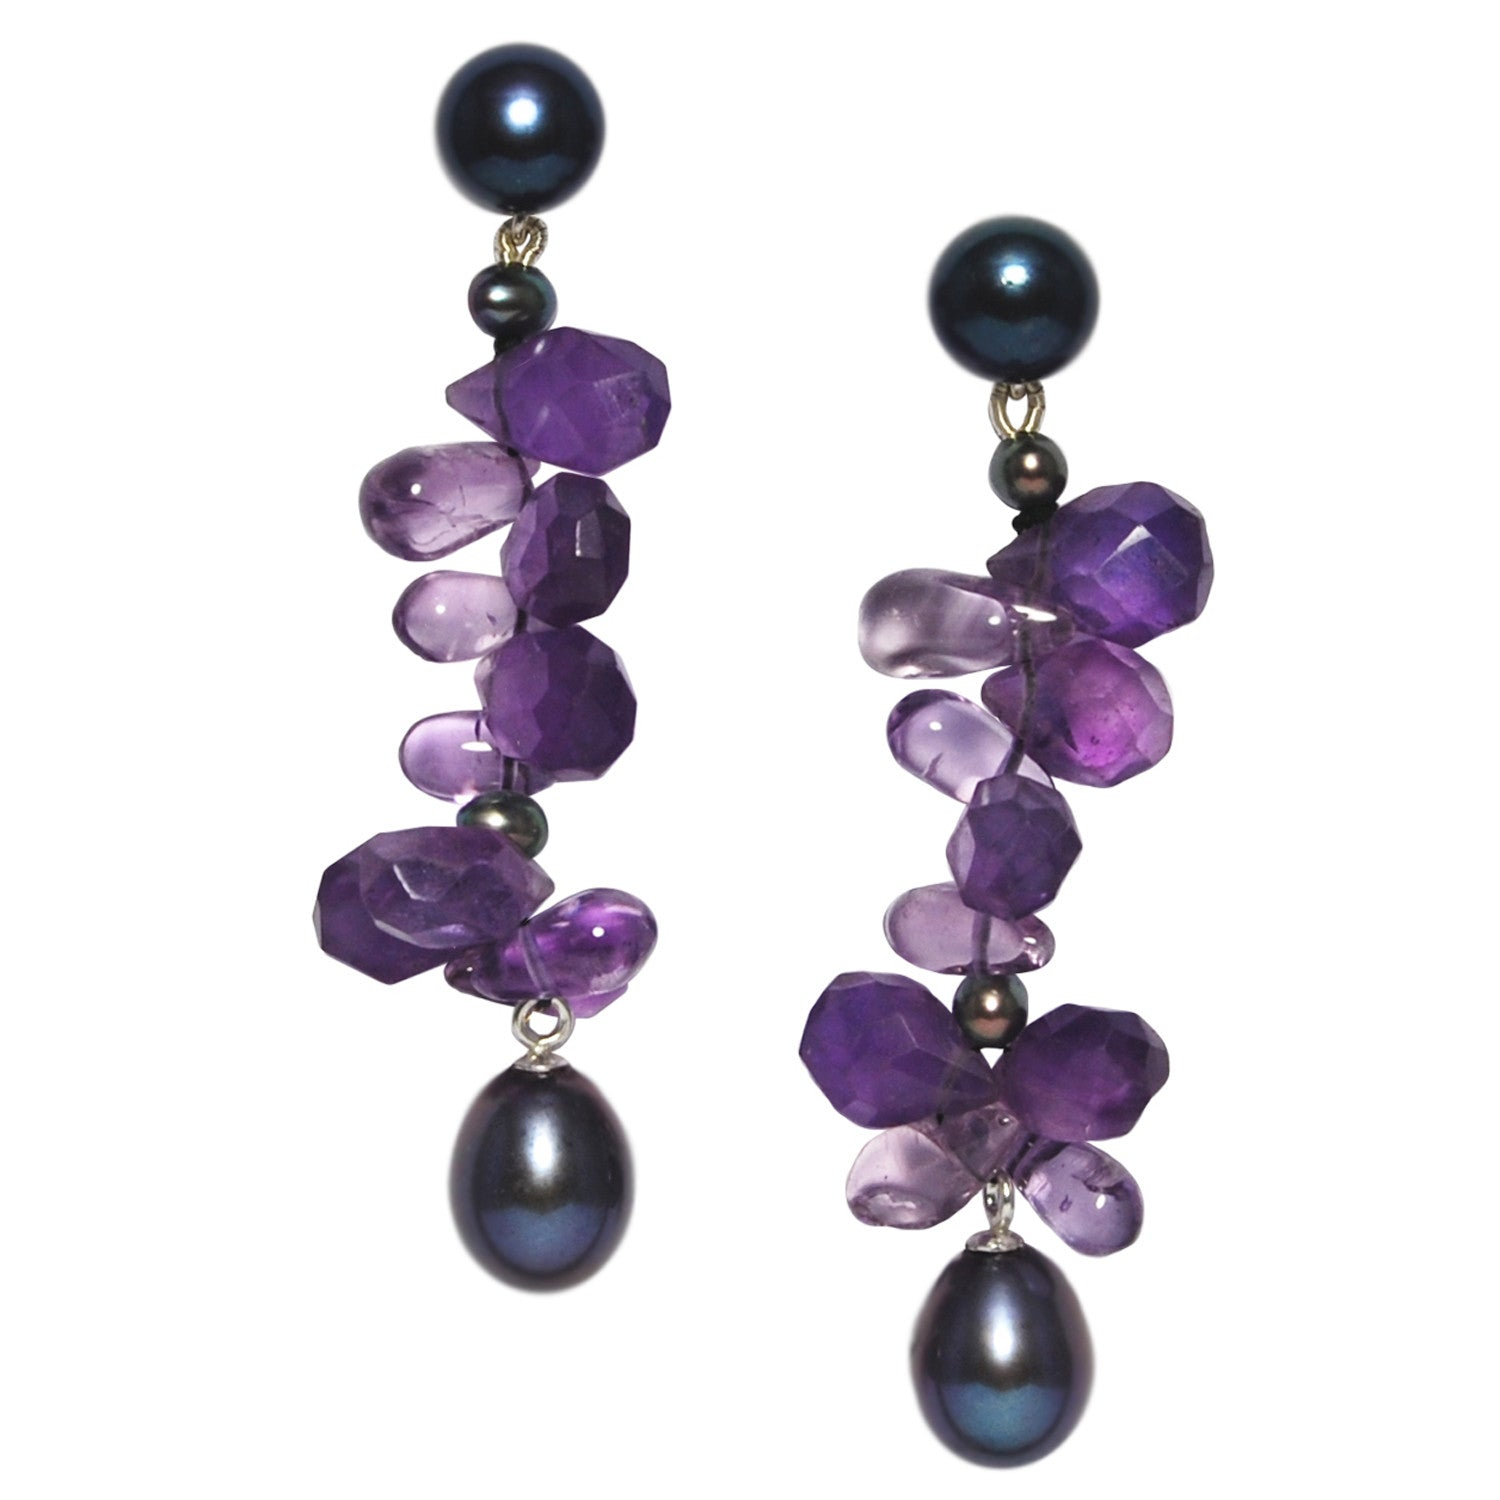 Long 'Twinkling Light' Earrings in Peacock Black and Amethyst